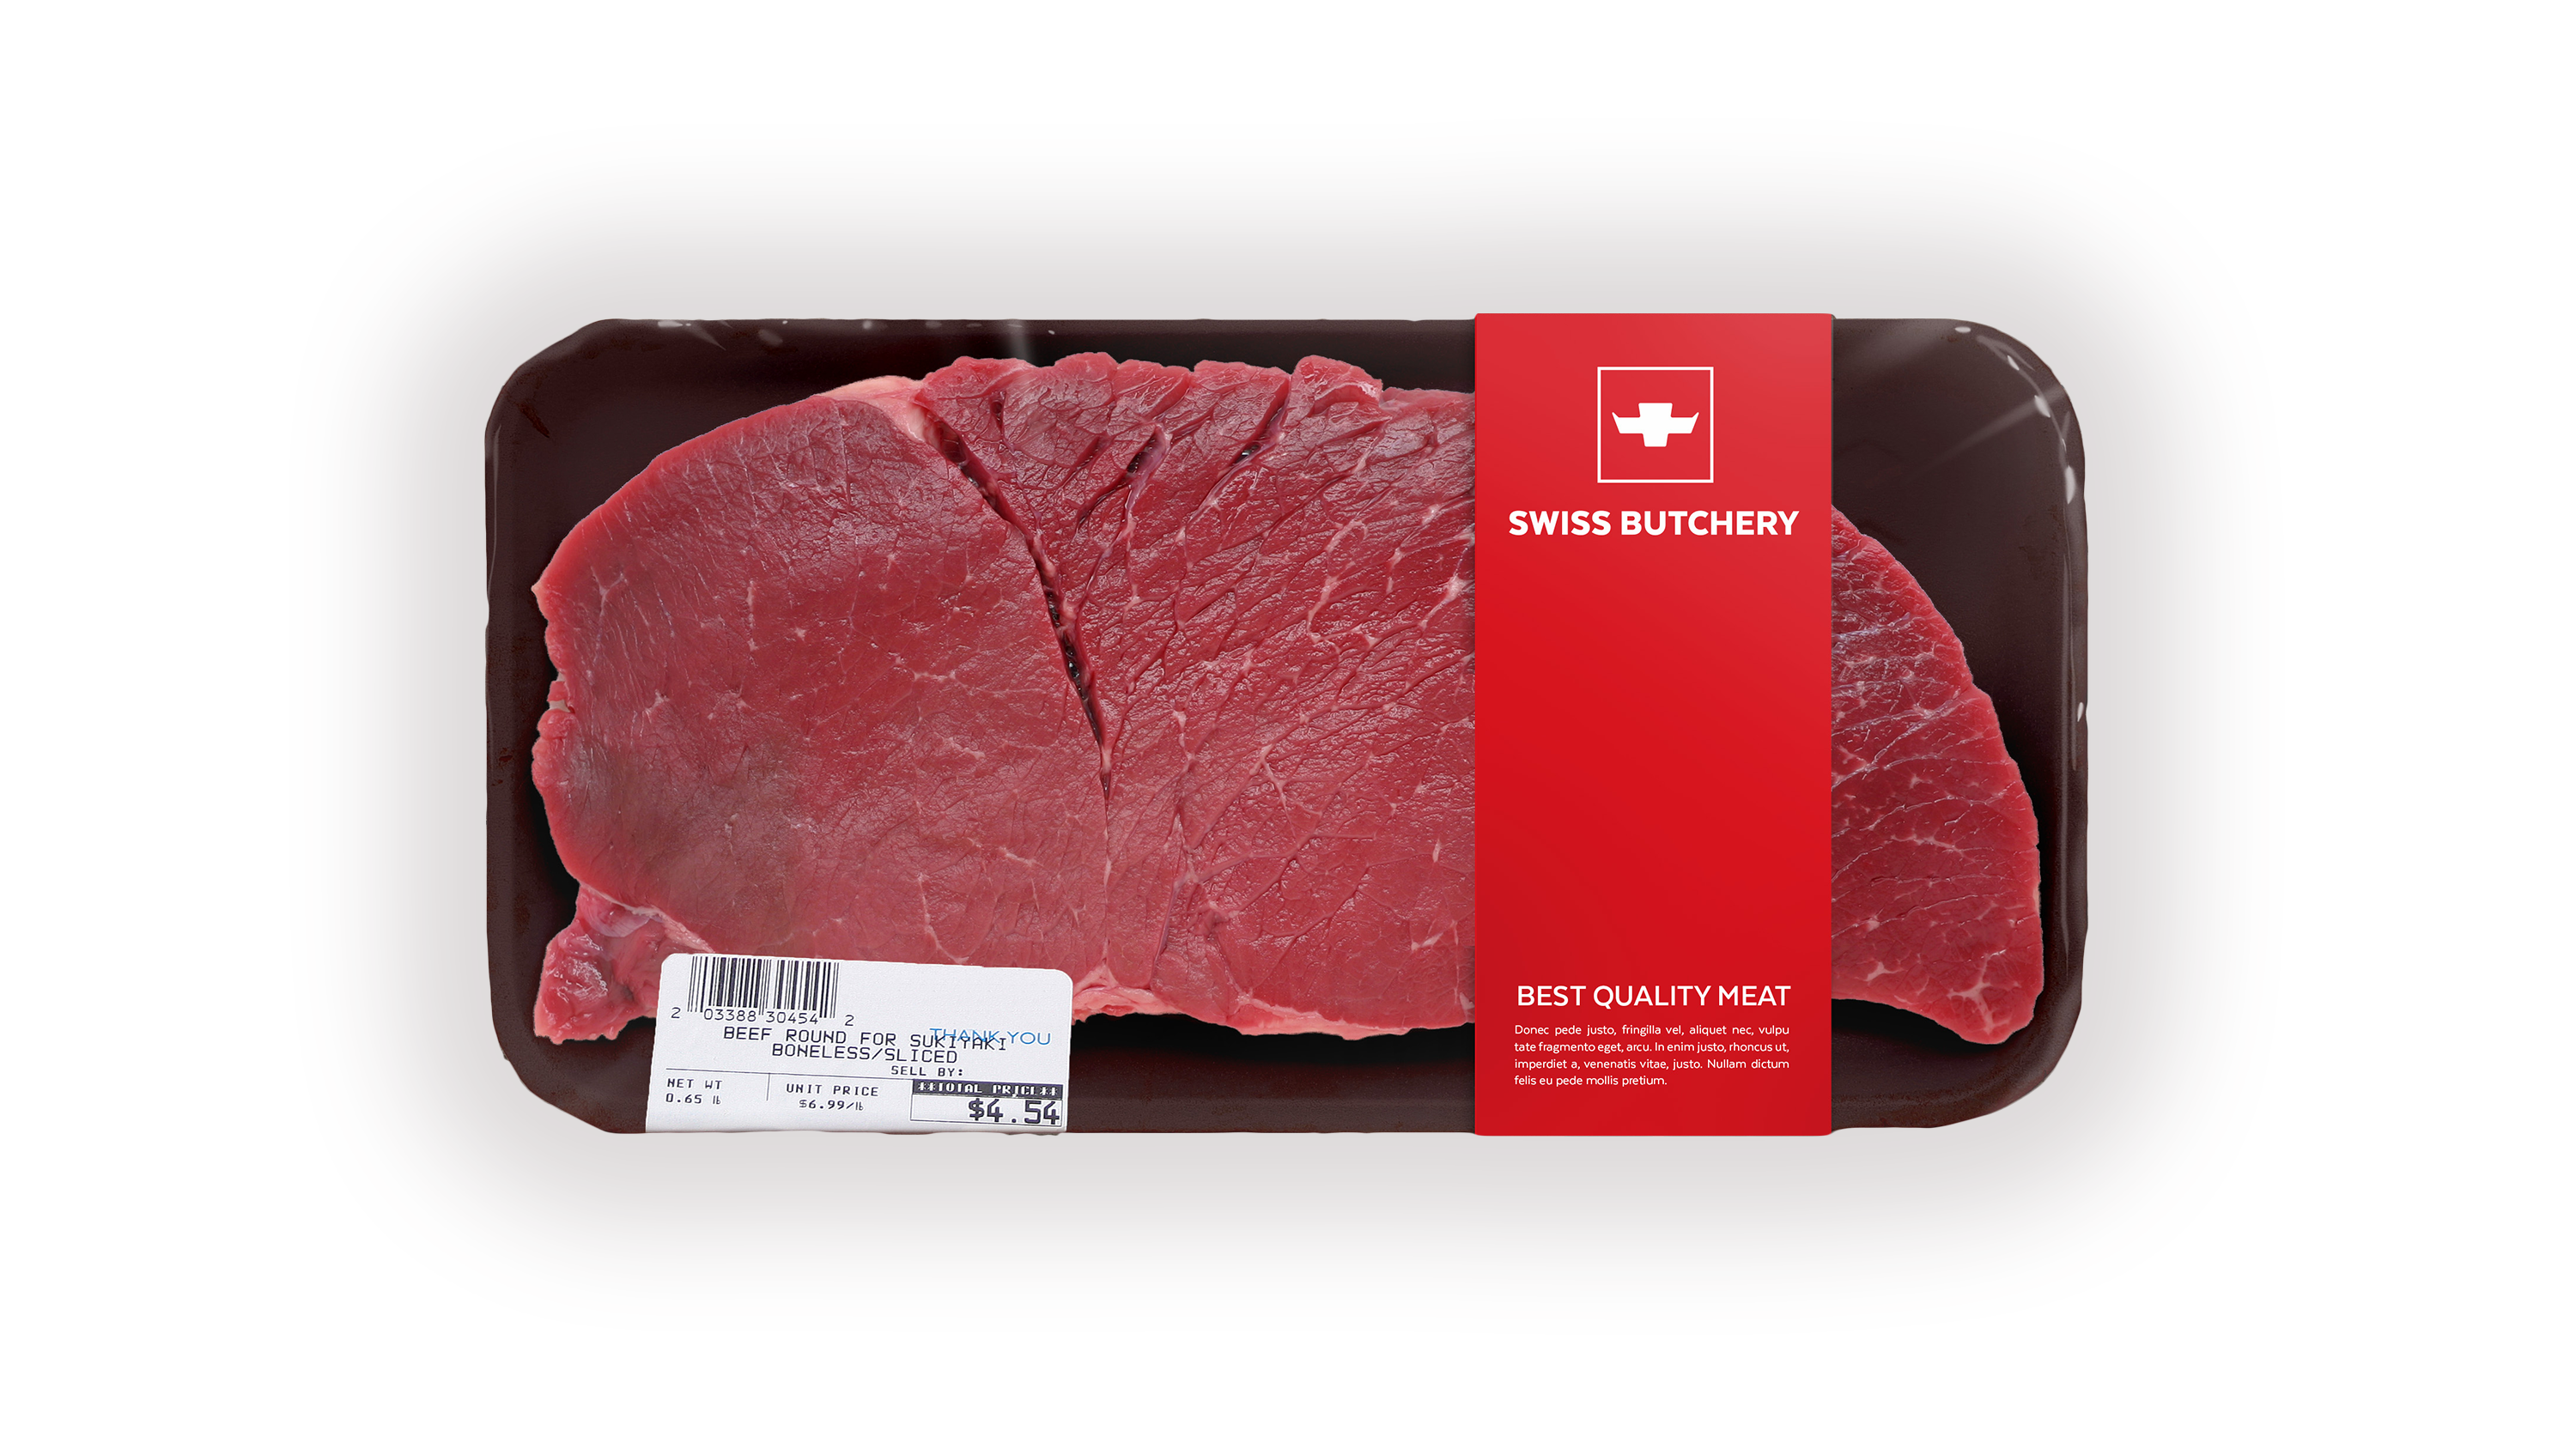 Swiss-Butchery-Packaging-2